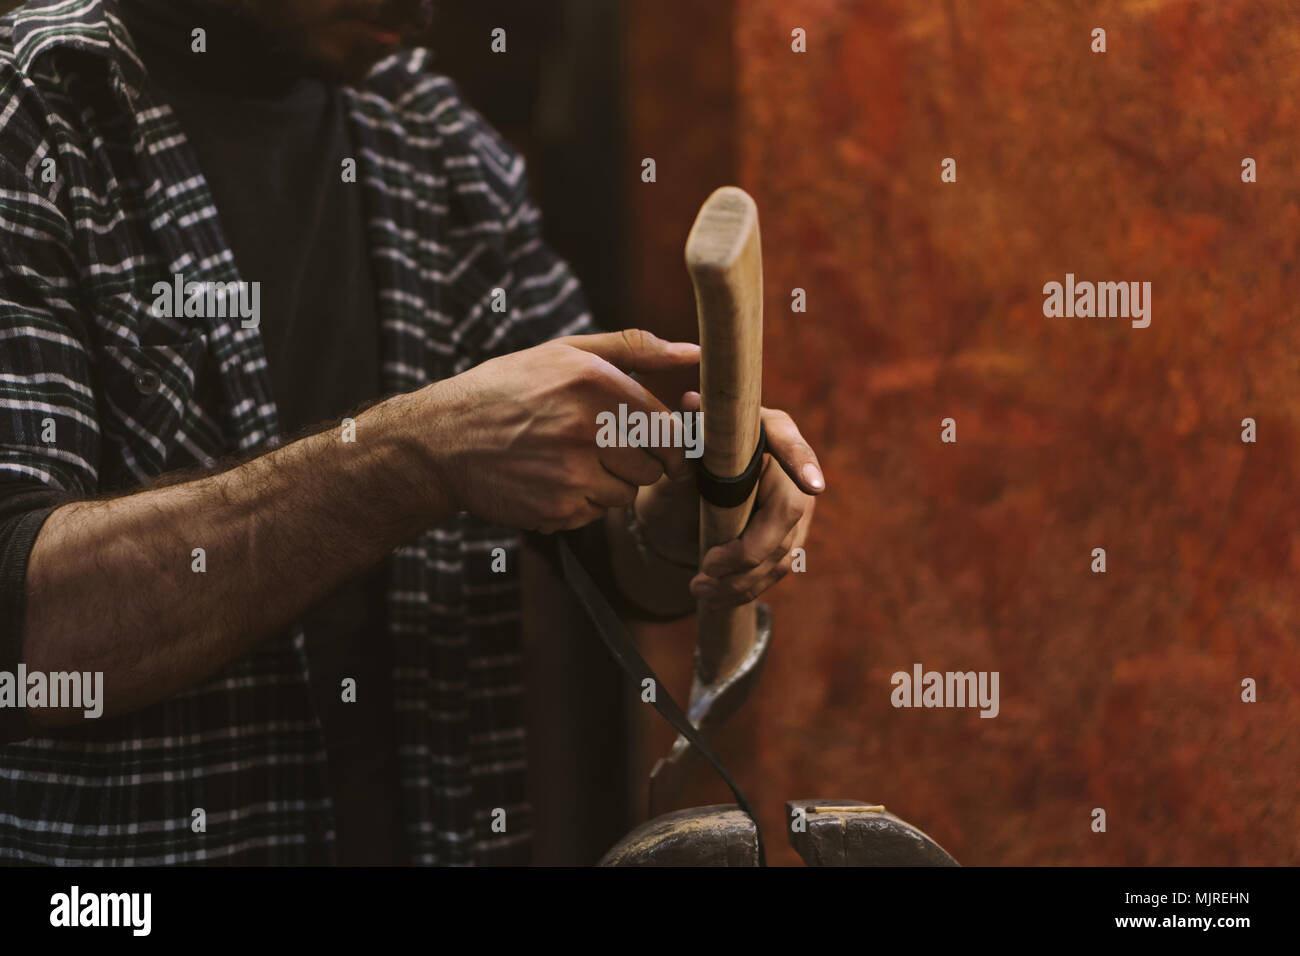 Man working in carpentry workshop. He wraps leather with wooden handle ax. Men at work. Hand work. - Stock Image